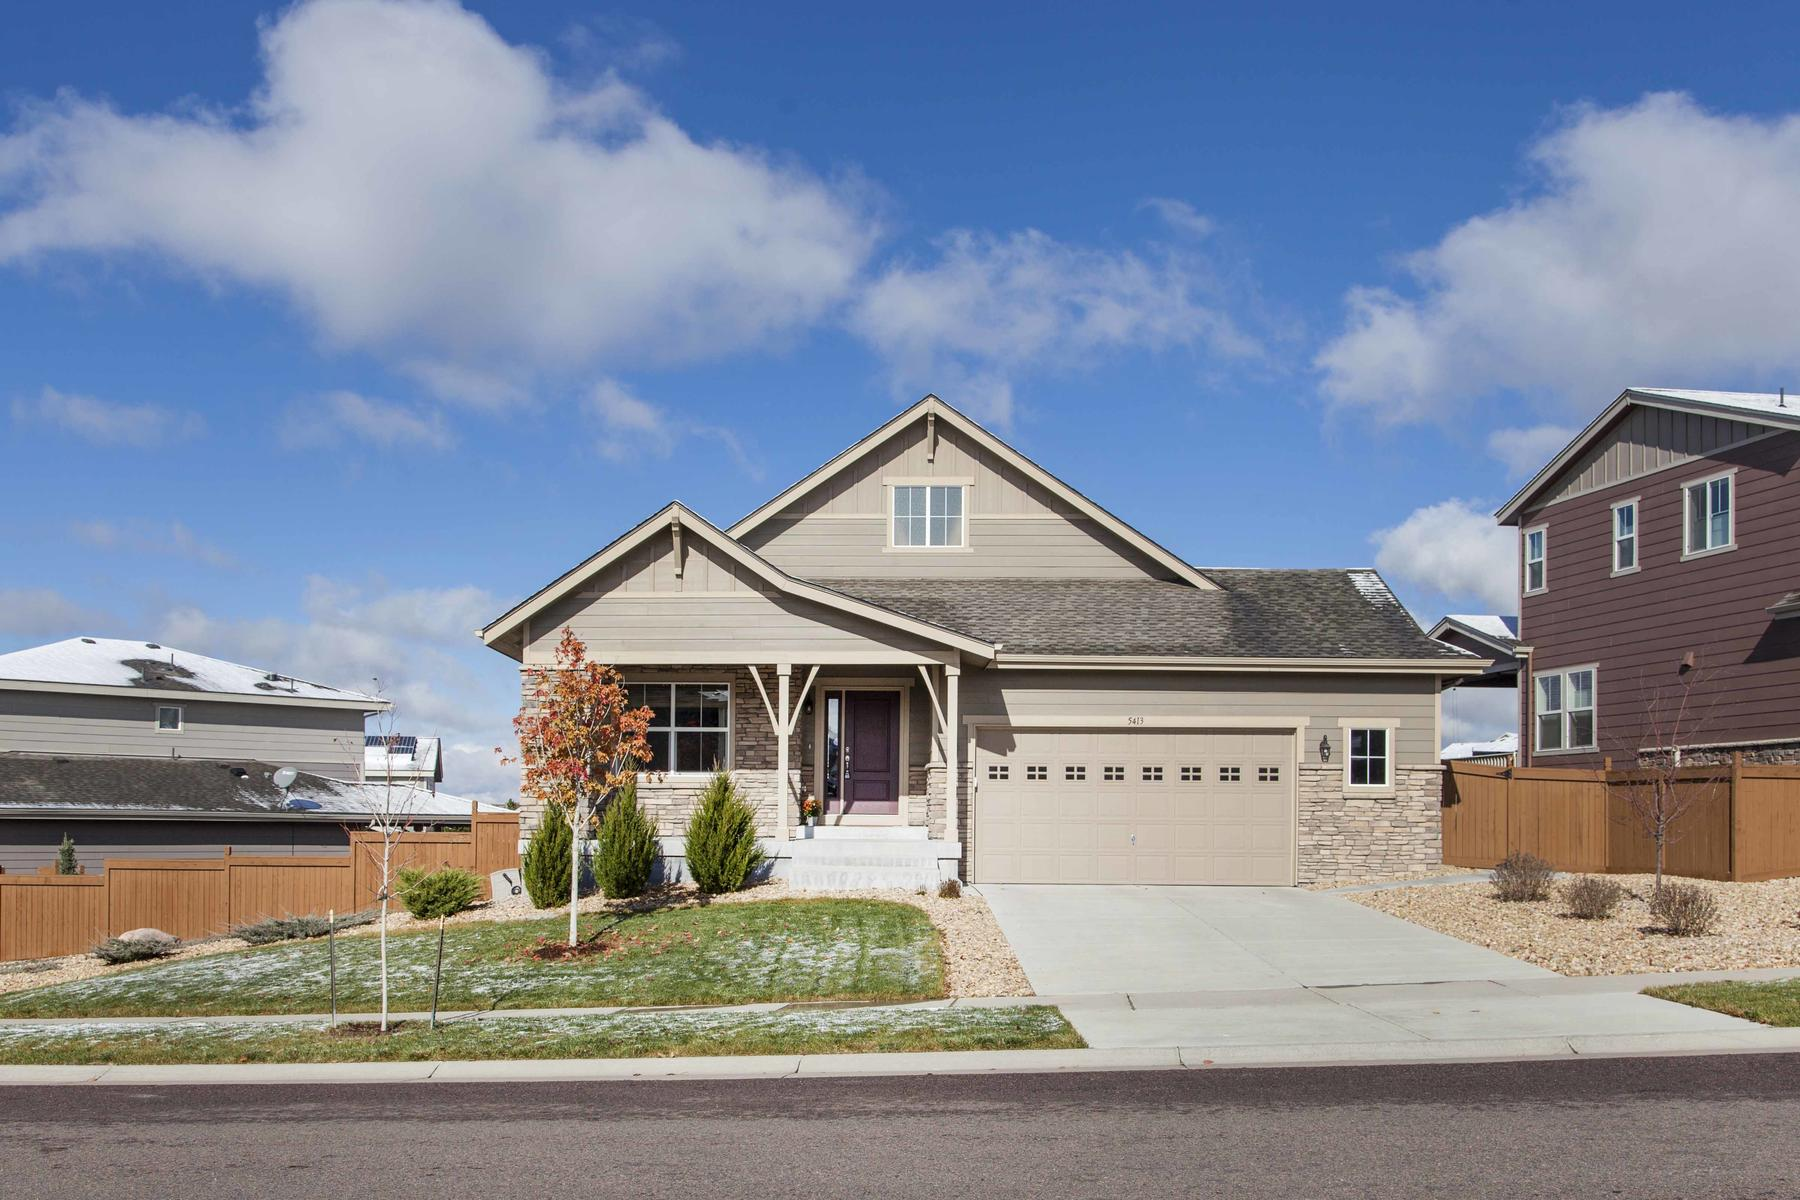 Single Family Home for Active at This Home Looks Like It Has Never Been Lived In! 5413 S Granby Way Aurora, Colorado 80015 United States